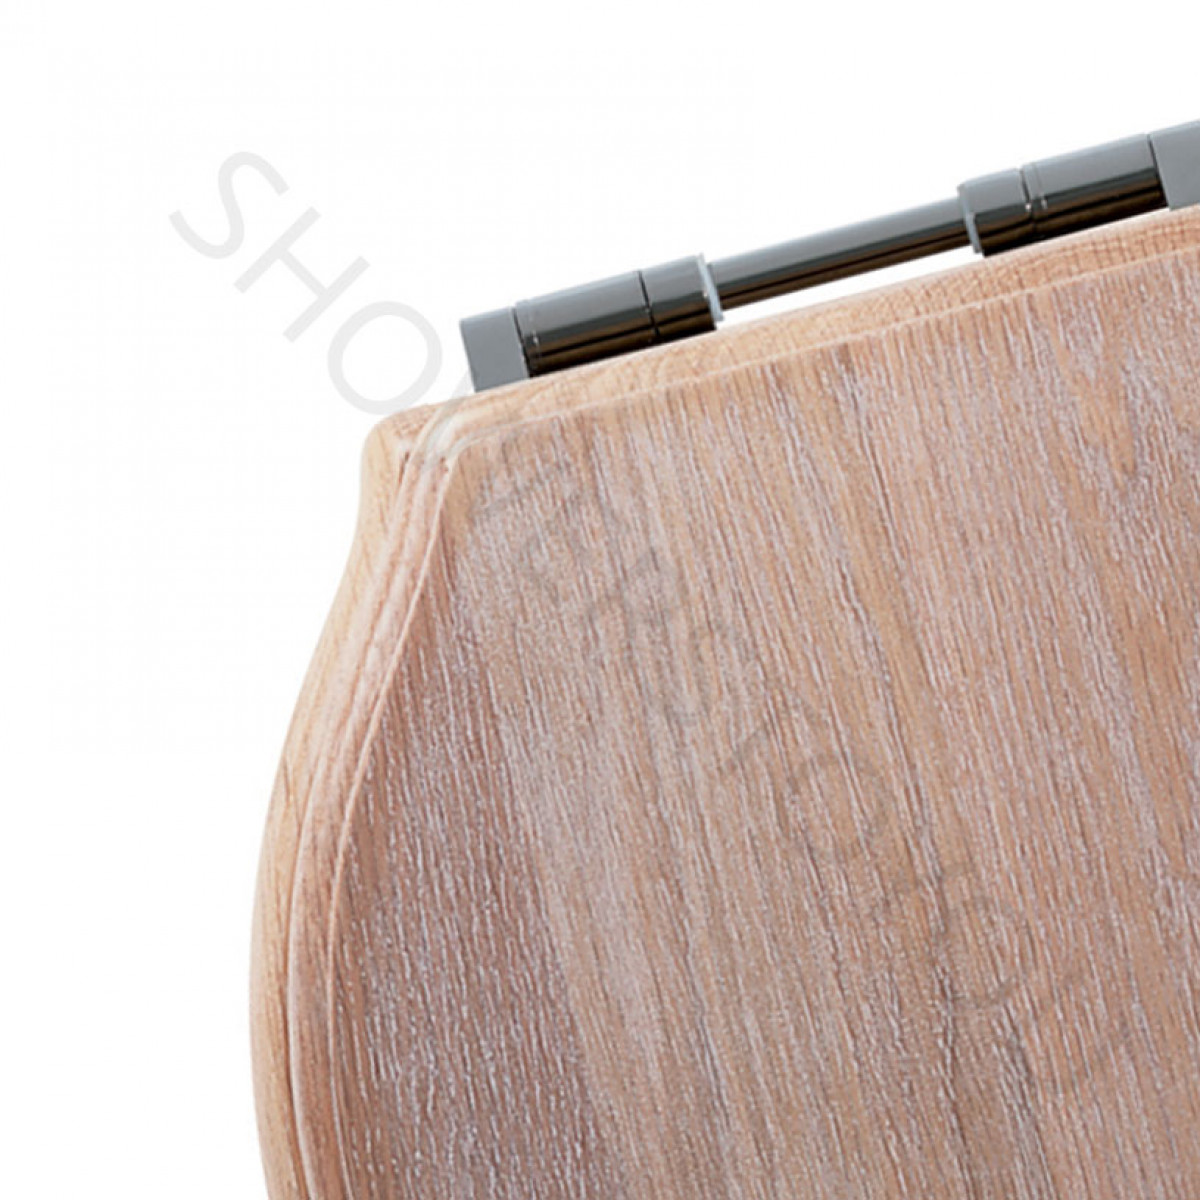 Soft Close Wooden Toilet Seat Hinges Heavy Wood Toilet Seat Cover